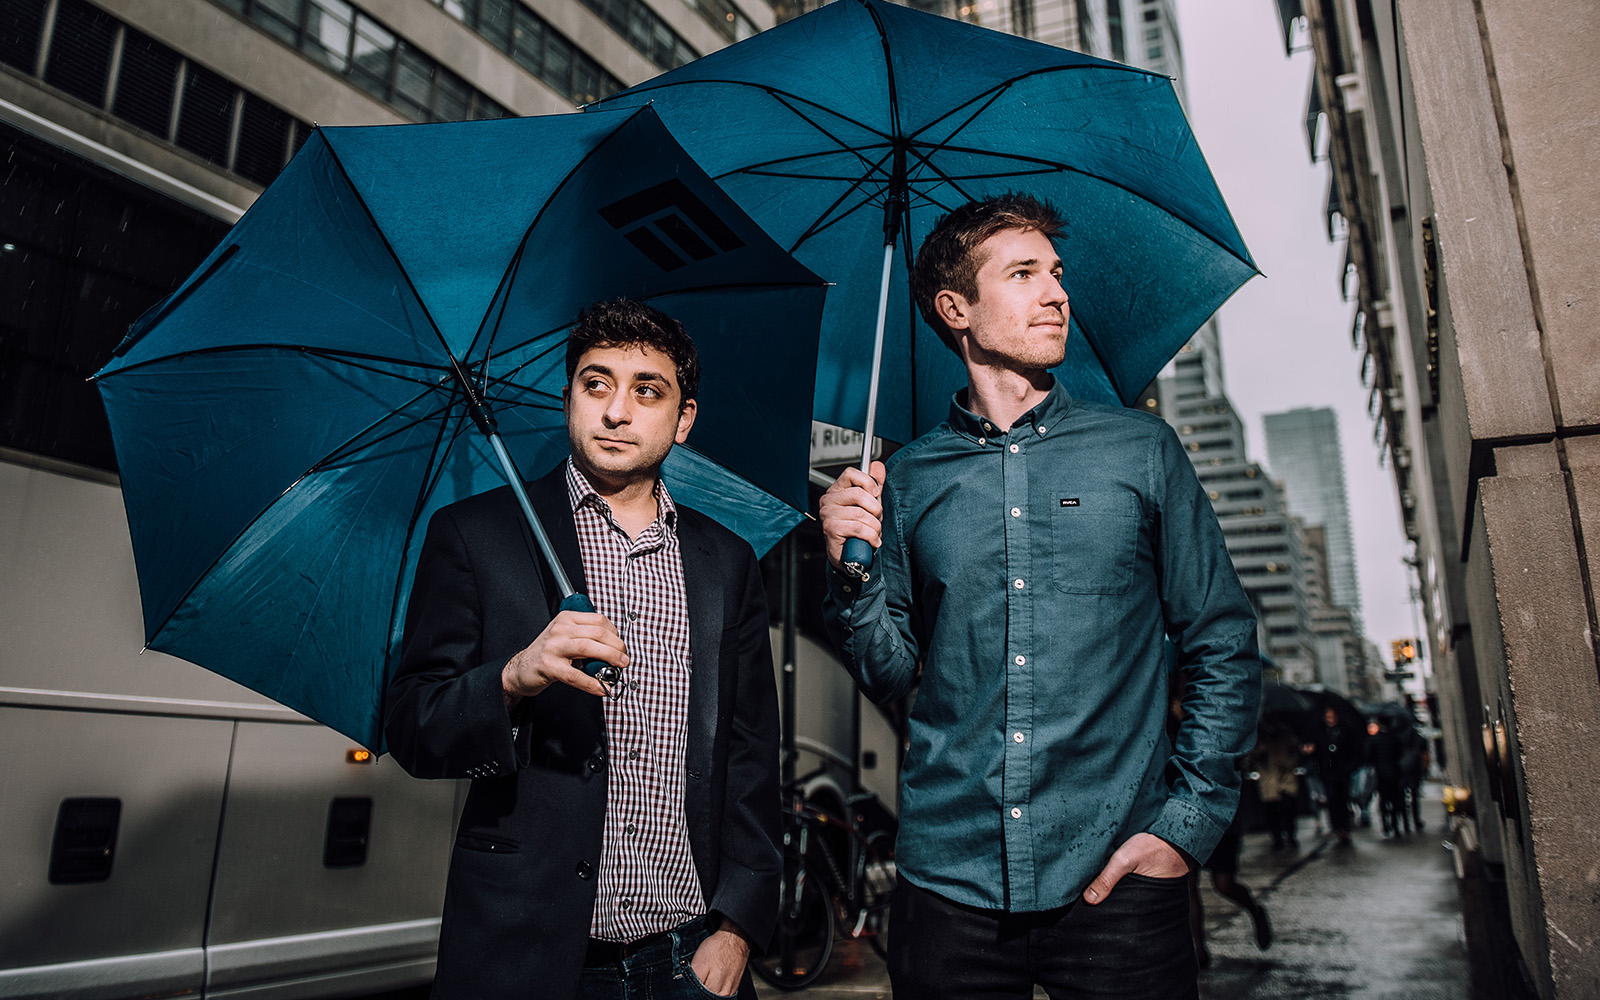 Nadav Ullman '12 (BUS), the CEO, and Thomas Bachant '13 (ENG), co-founder and CTO of Dashride, outside their office on 5th Avenue in New York City. (Nathan Oldham/UConn Photo)